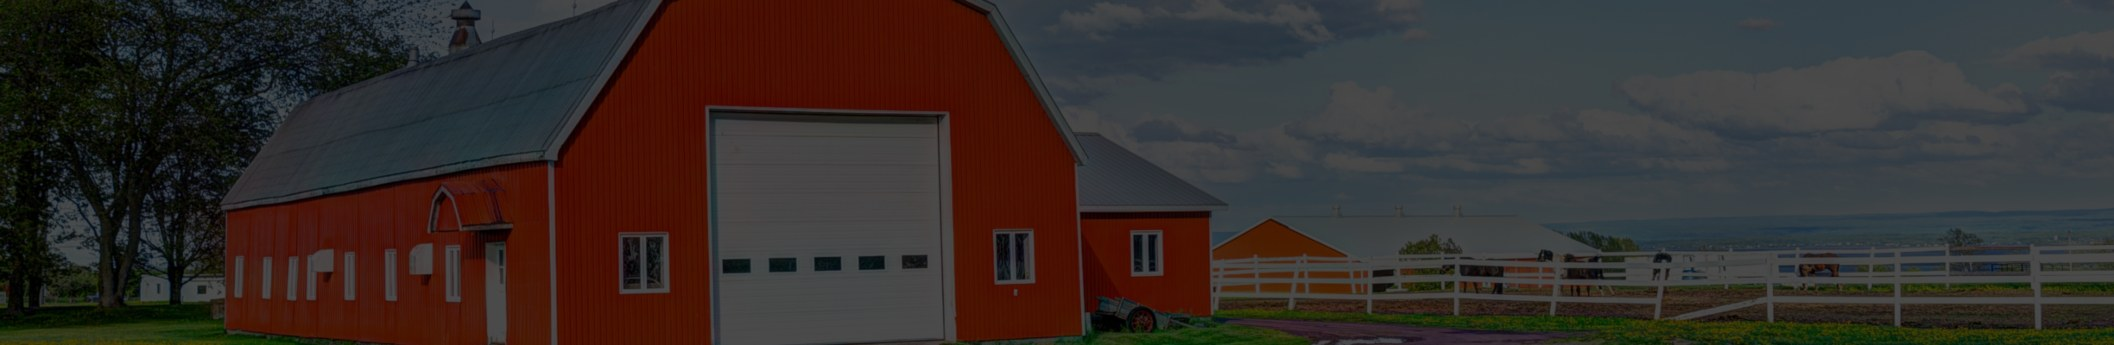 Estimate the Replacement Cost of Farm Machinery Storage